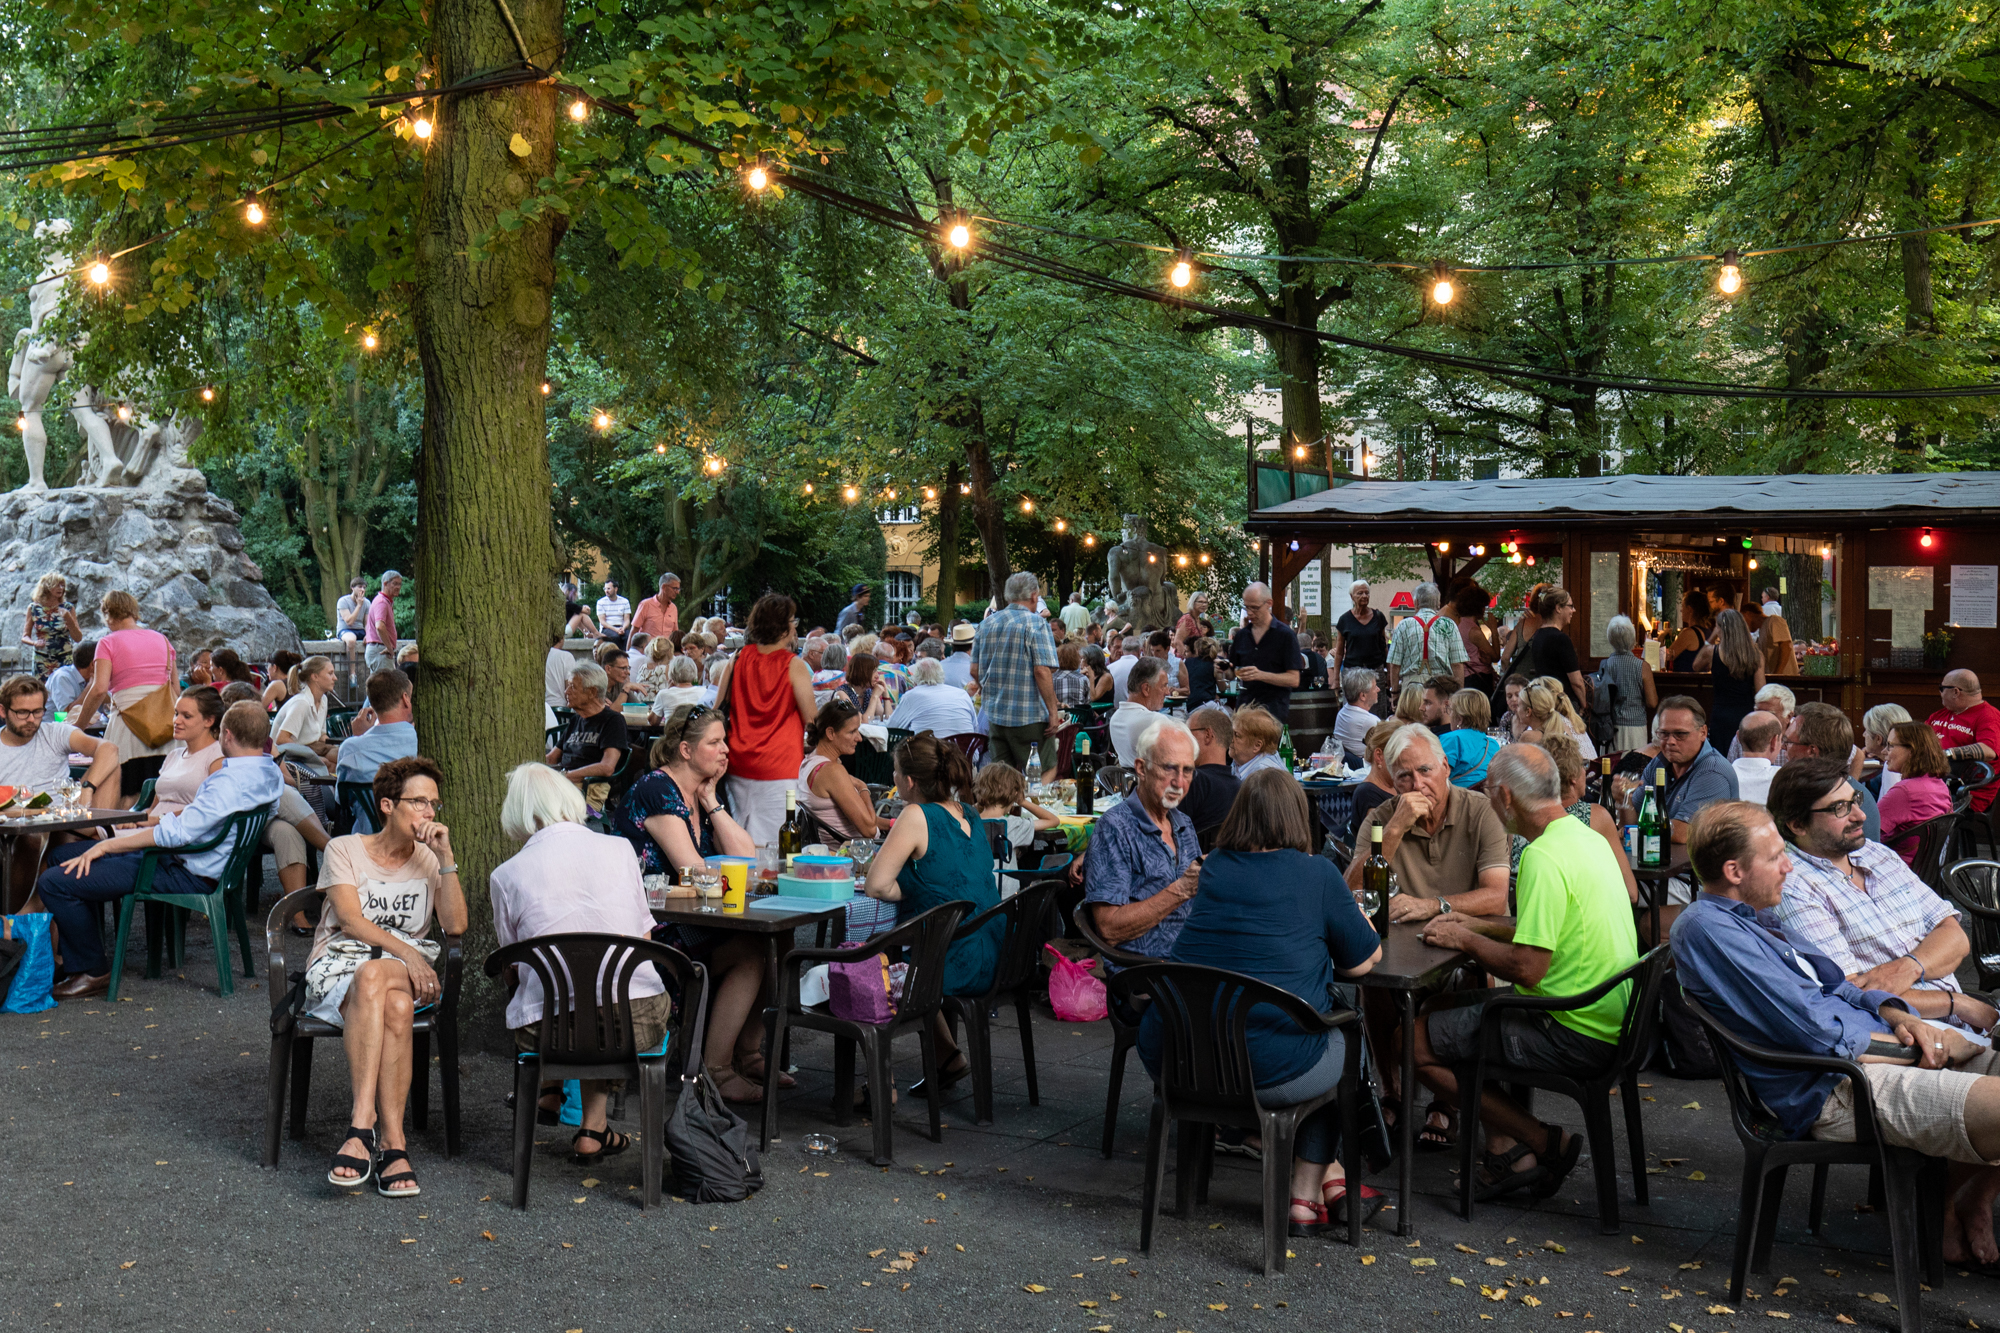 Guests under the lights in the trees at Rheingauer Weinbrunnen - a wooden hut serving wines from Rheingau-Taunus district of Hesse on the Rüdesheimer Platz in Berlin Wilmersdorf